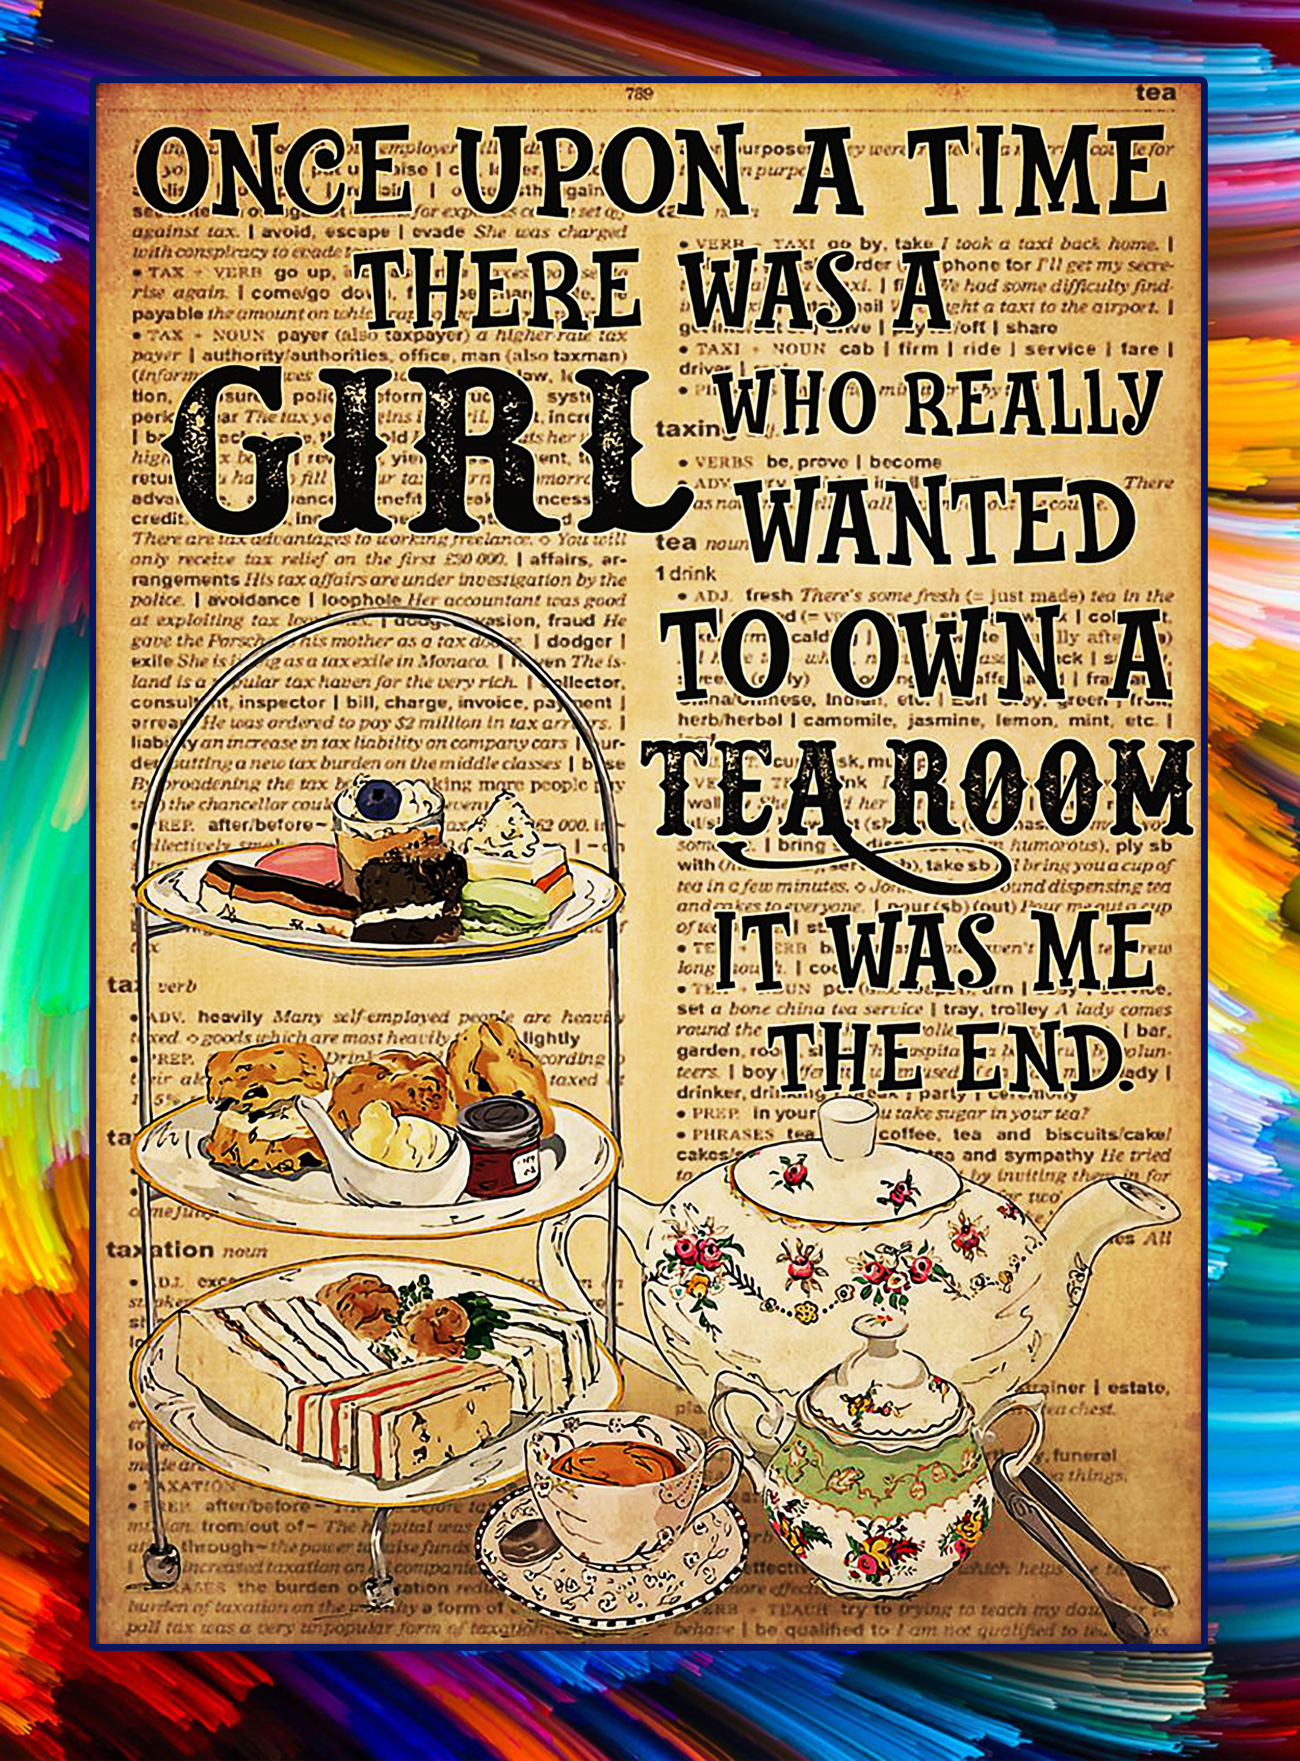 Once upon a time there was a girl who really wanted to own a tea room poster - A1